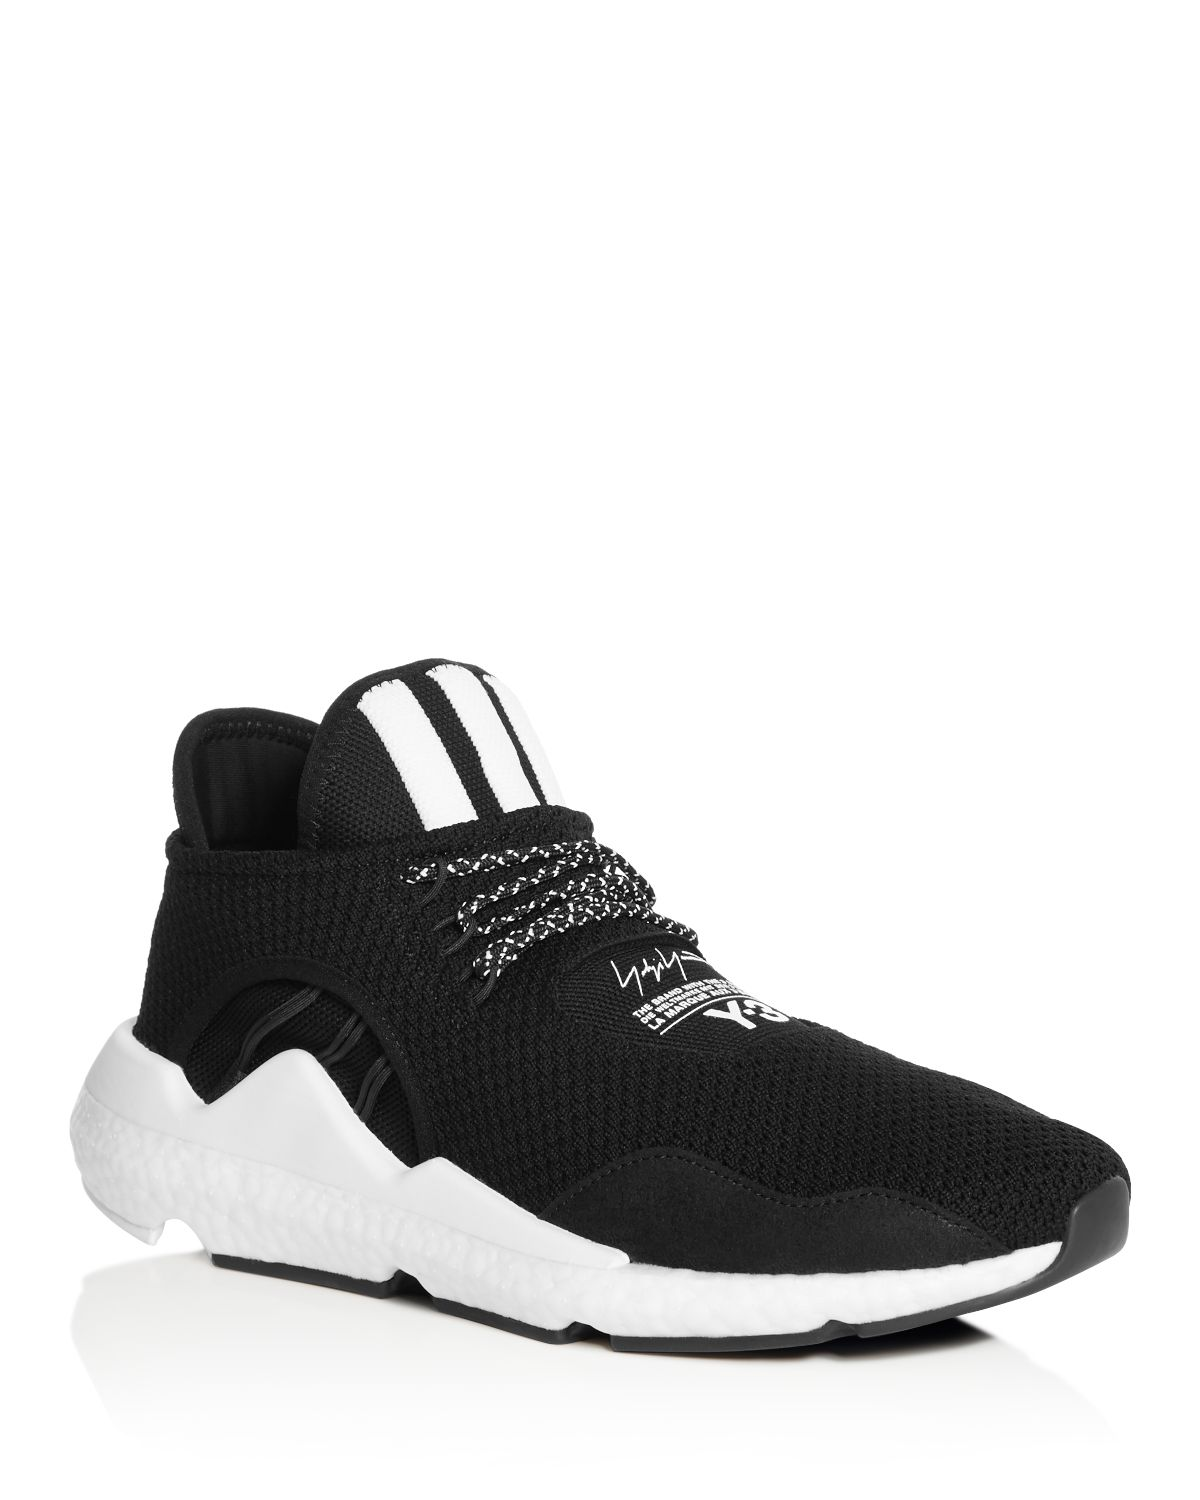 Y-3 Men's Saikou Primeknit Lace Up Sneakers